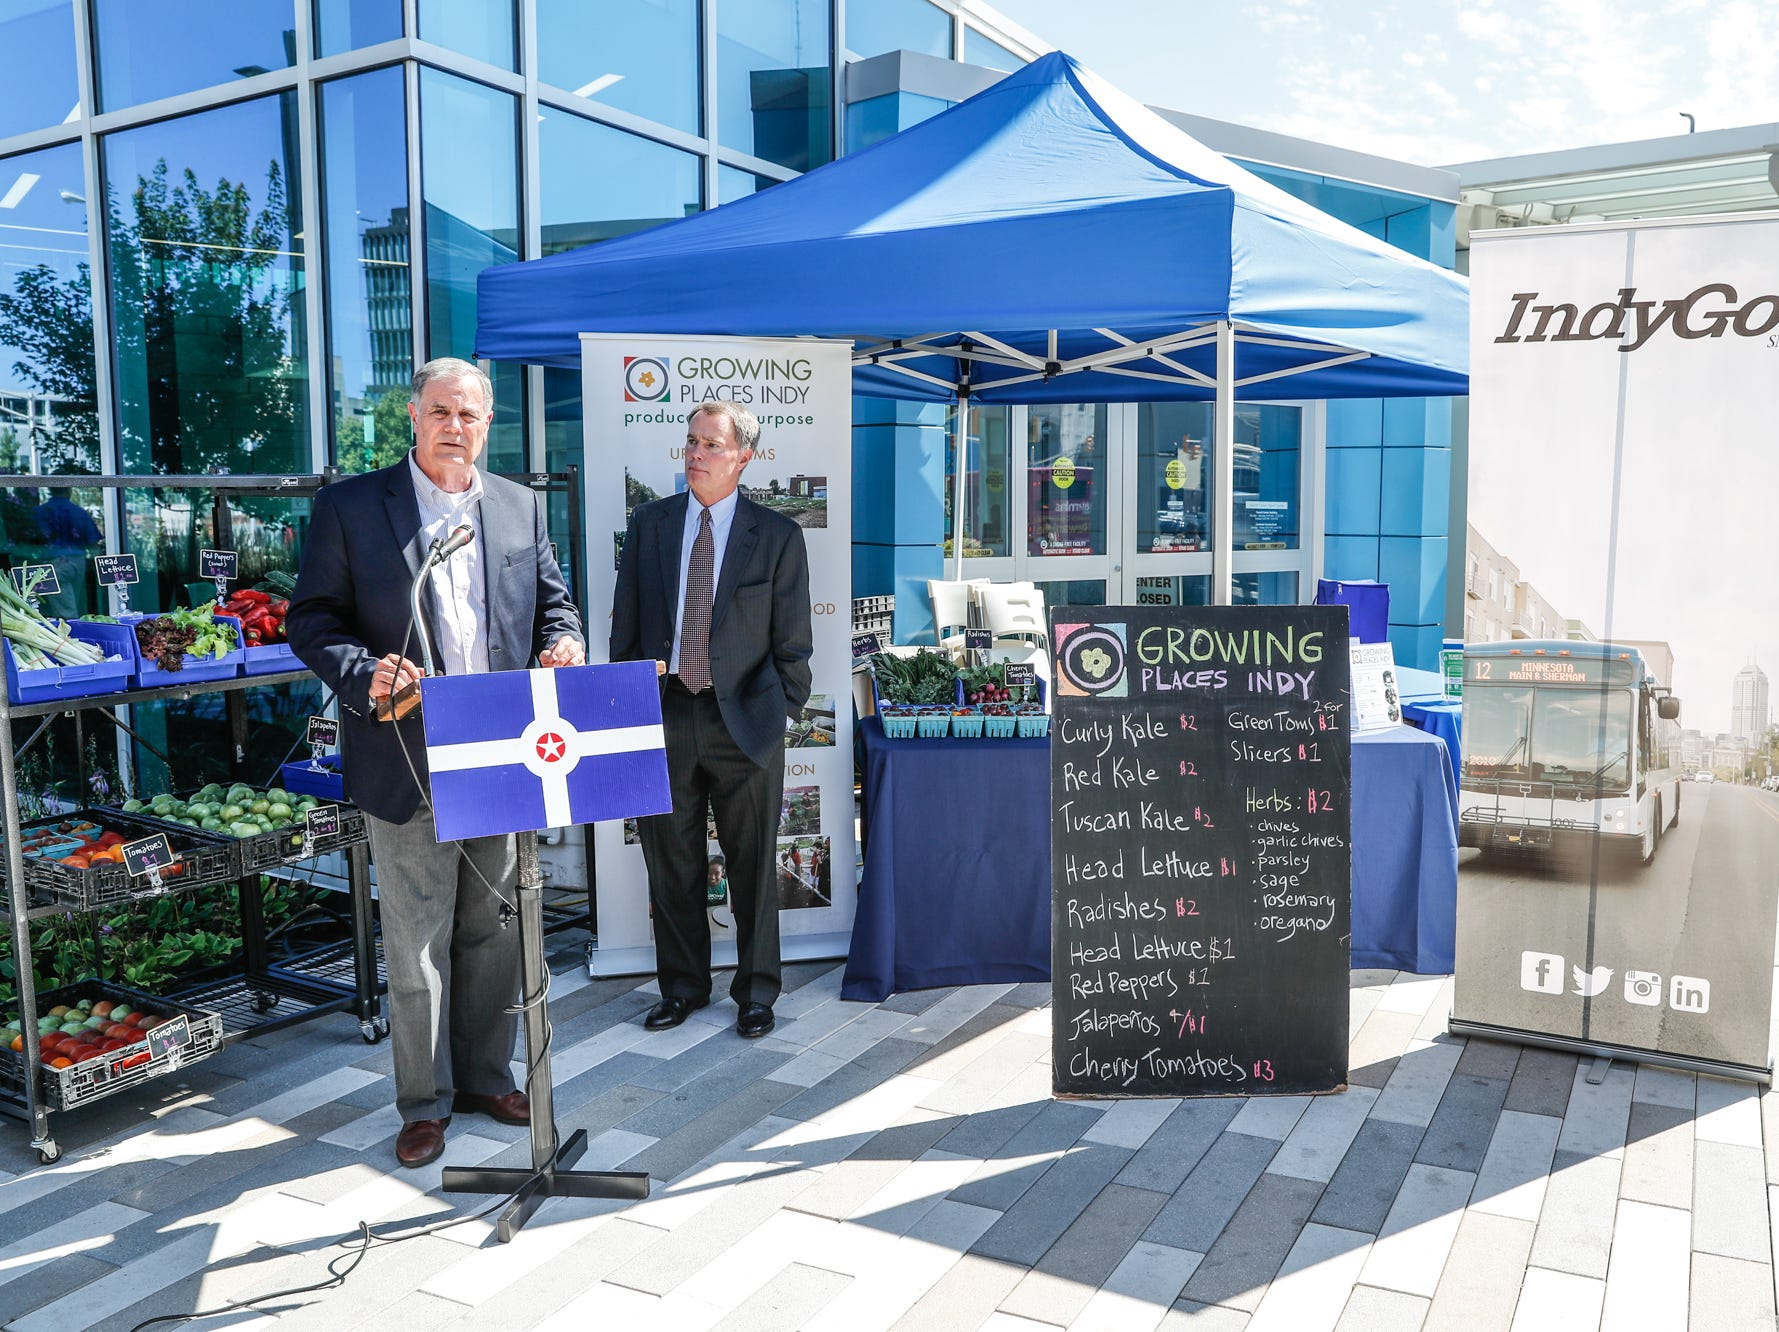 IndyGo President and CEO, Mike Terry, left, and Indianapolis Mayor Joe Hogsett, give remarks in partnership withGrowing Places Indy during the launch of the ÒFood in TransitÓ program at the Julia M. Carson Transit Center on Friday, Sept. 14, 2018. Visitors to the Transit Center can purchase produce every Friday from 3 p.m. to 6 p.m. through October 26.